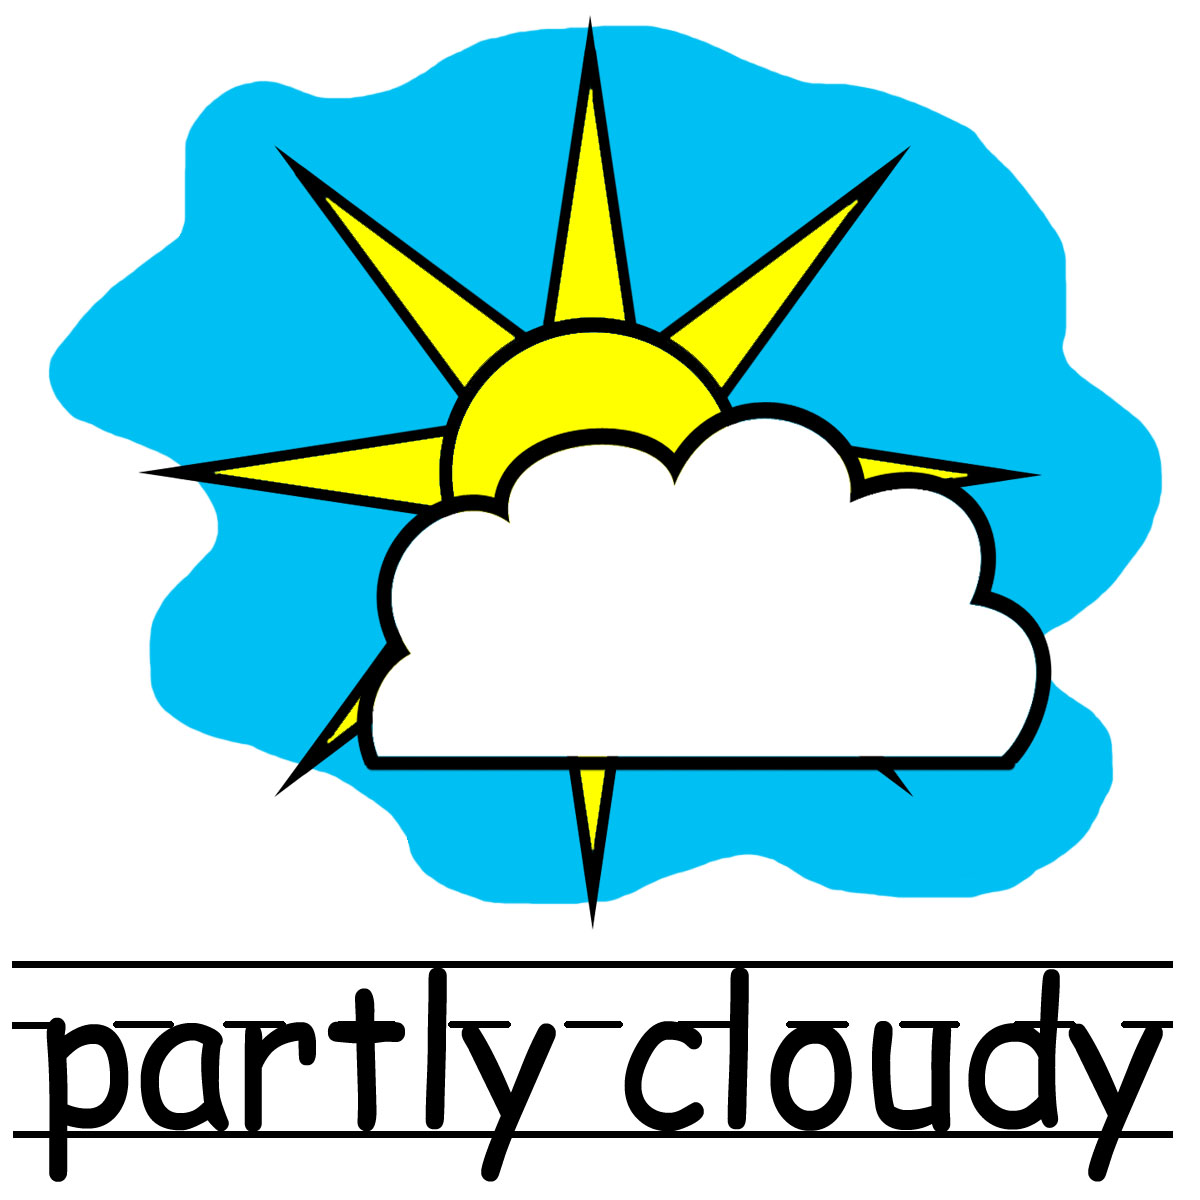 Partly Cloudy Clipart Black And White Cl-Partly Cloudy Clipart Black And White Clipart Panda Free Clipart-18